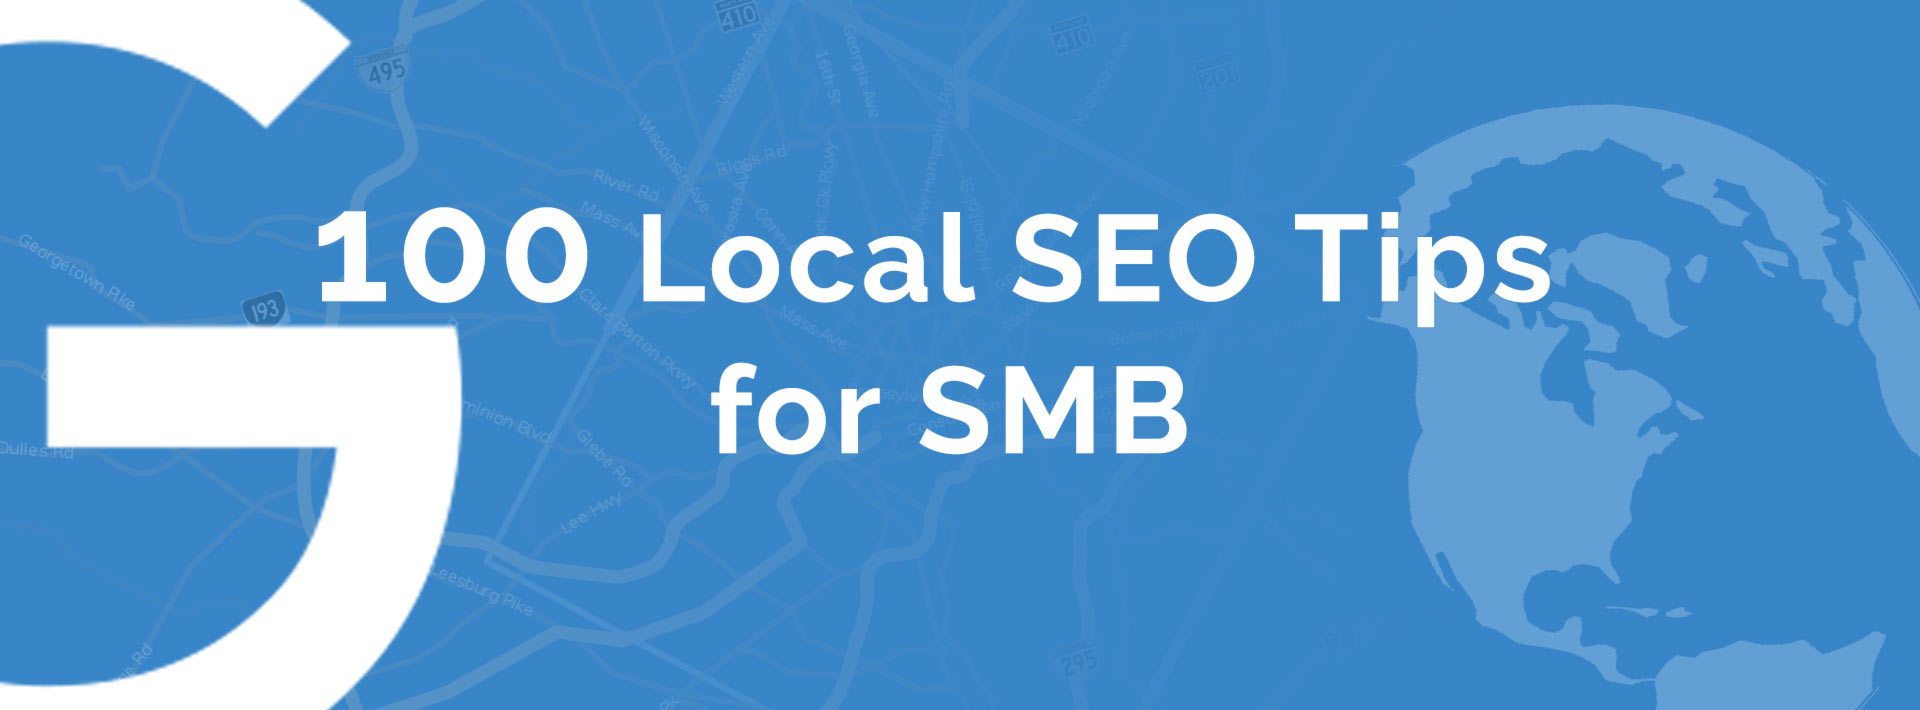 Local Seo Checklist 2018